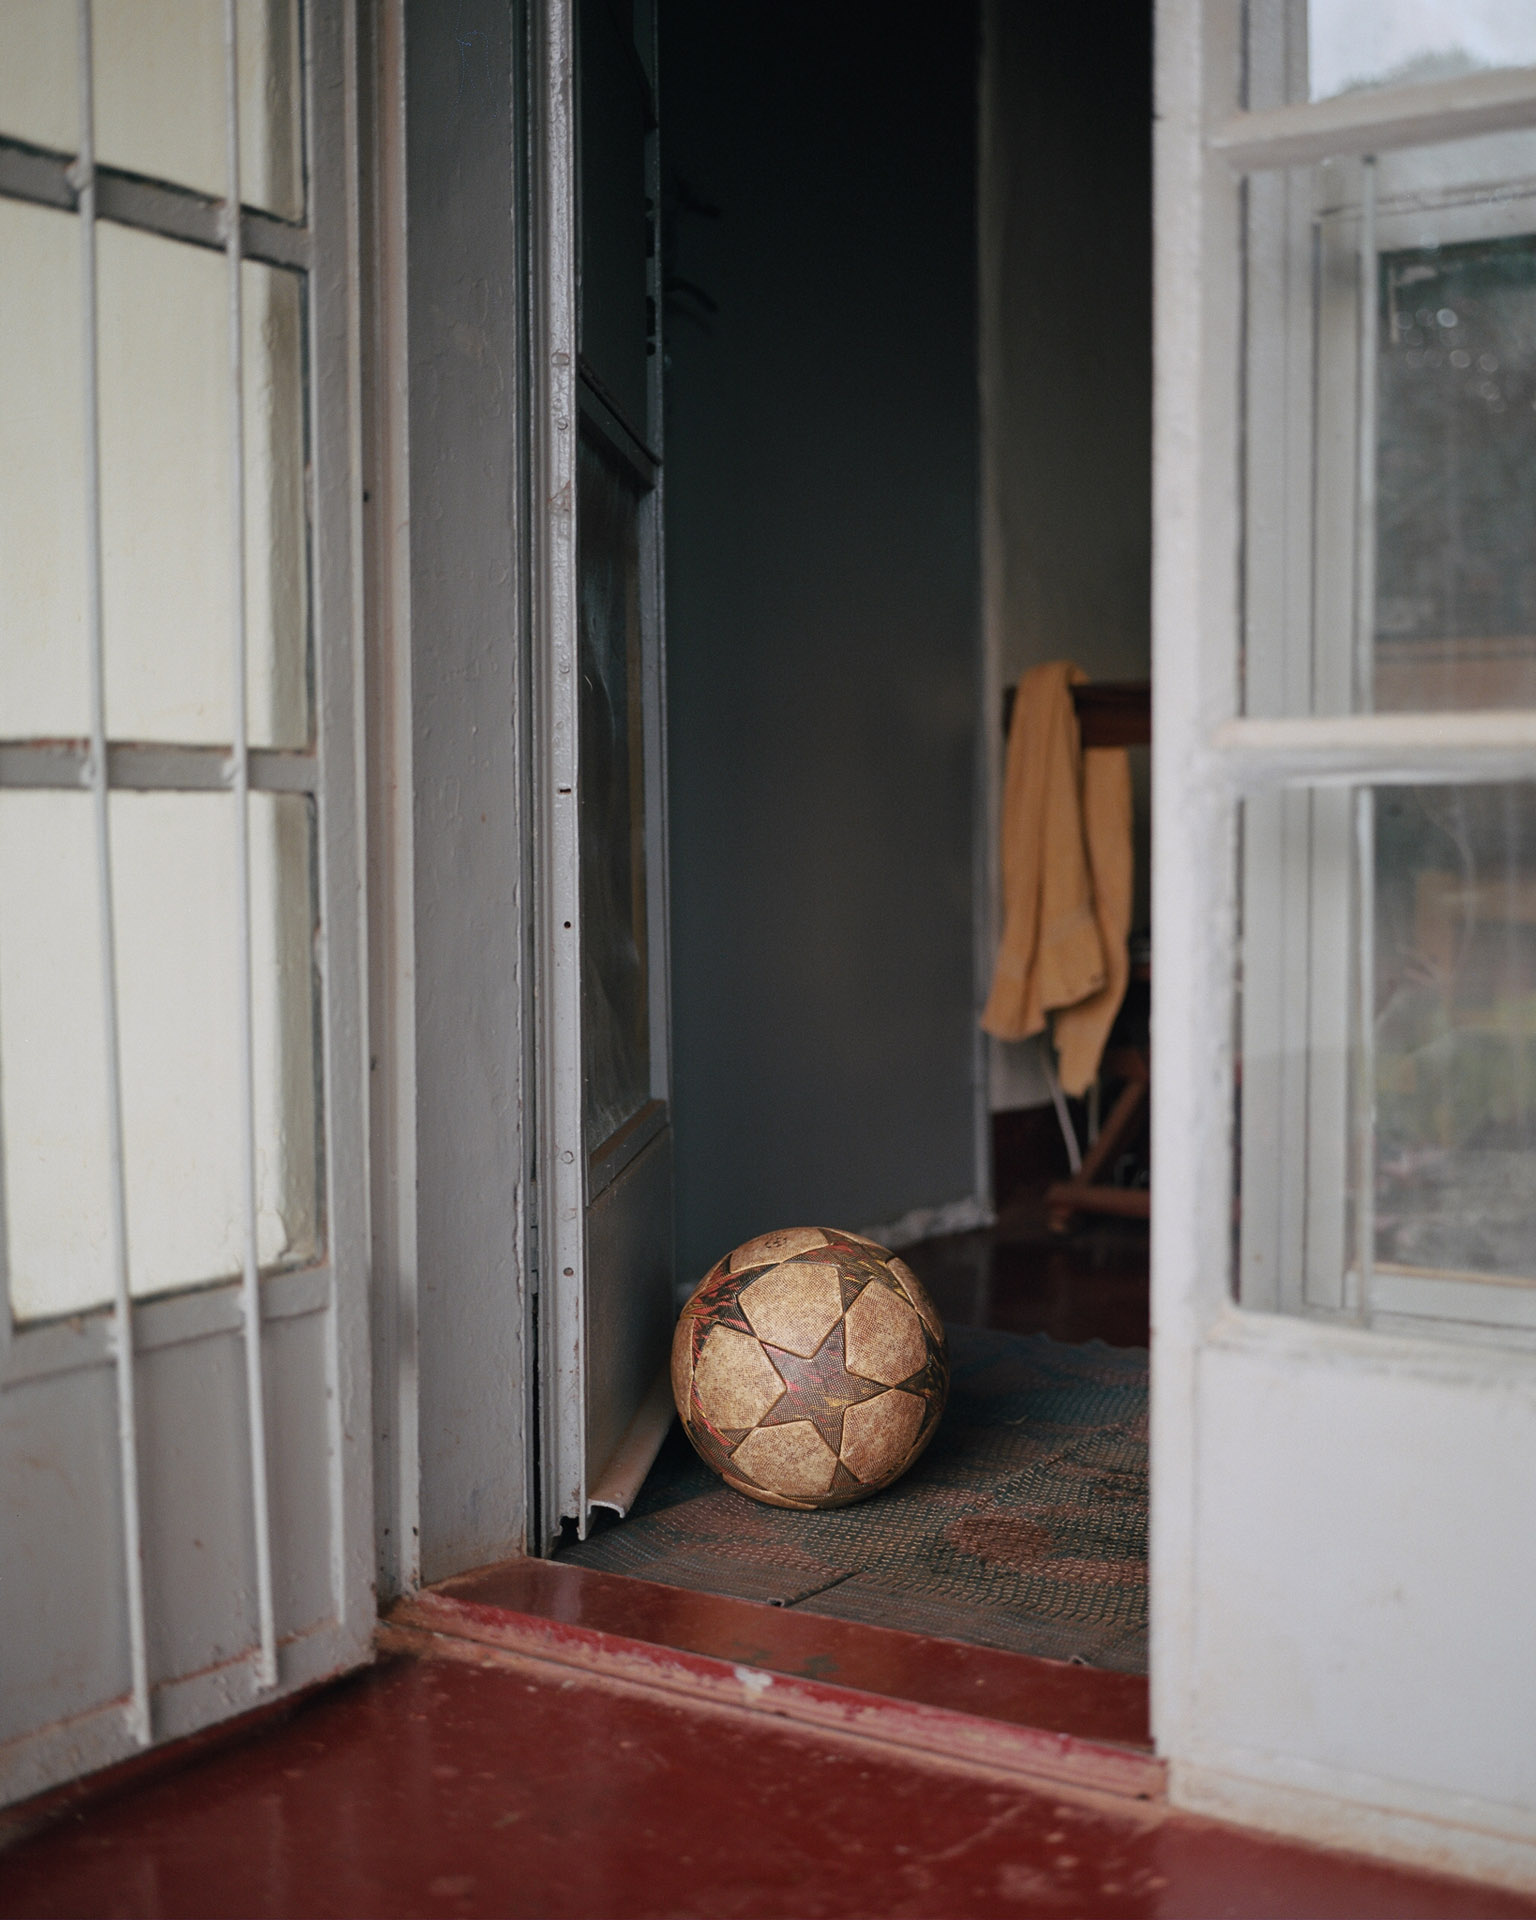 beaten soccer ball at the entrance of a house by Alexi Hobbs in Uganda for Football for good with Sportsnet